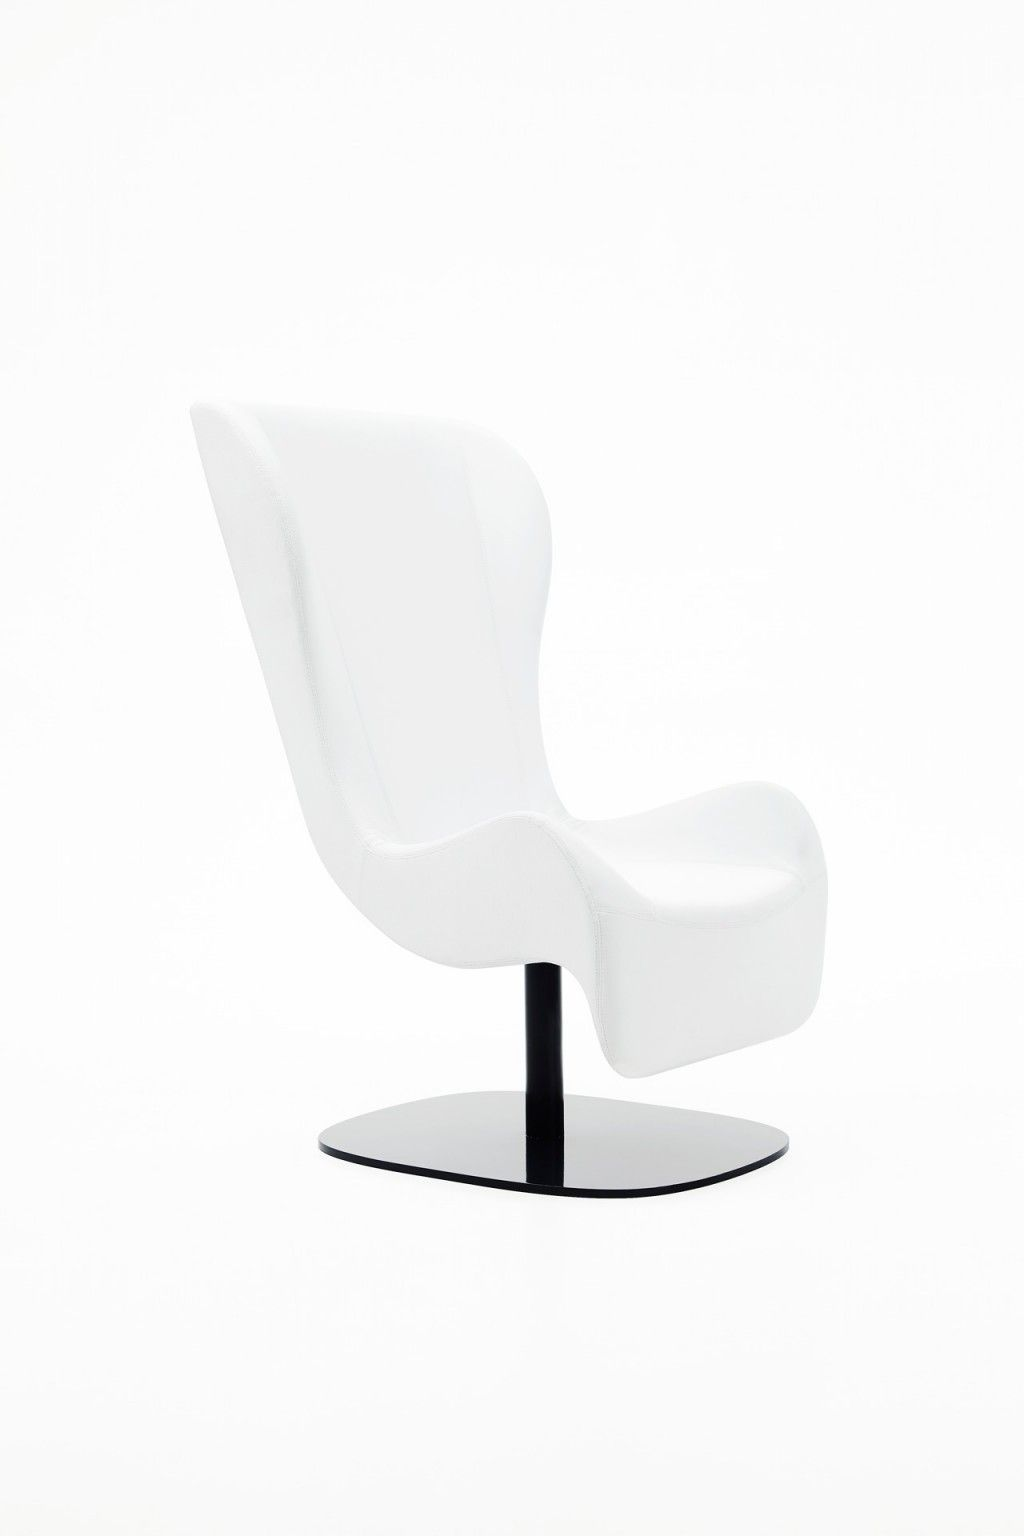 karim rashid Karim Rashid: An Excentric Chair Collection Karim Rashid An Excentric Chair Collection 5